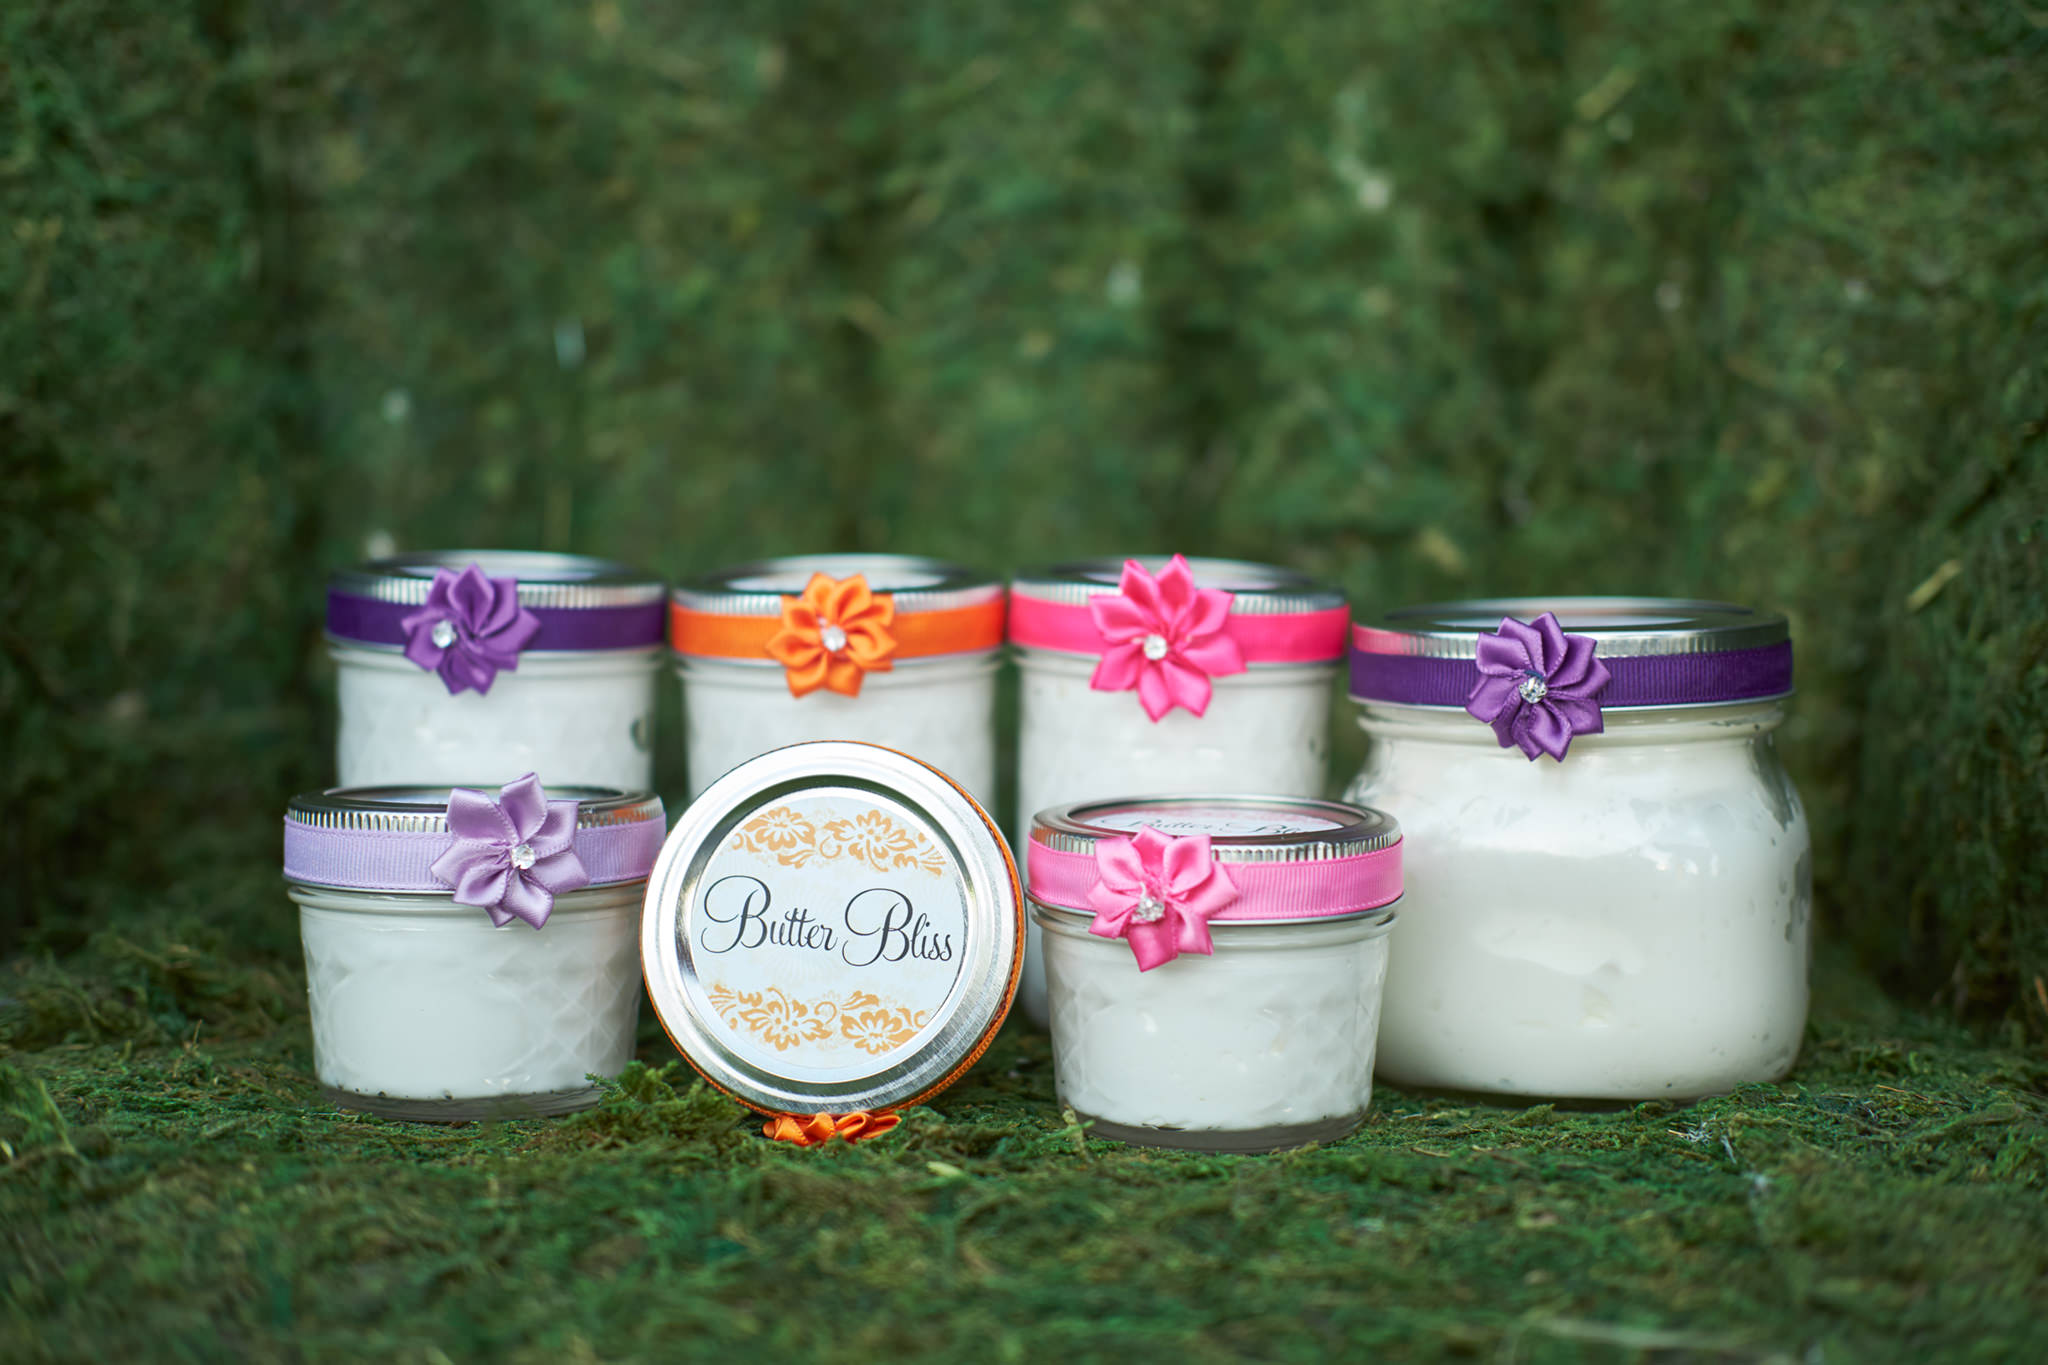 web-Product-Photography-business-butter-bliss-skin-care-covet-studio-outside12